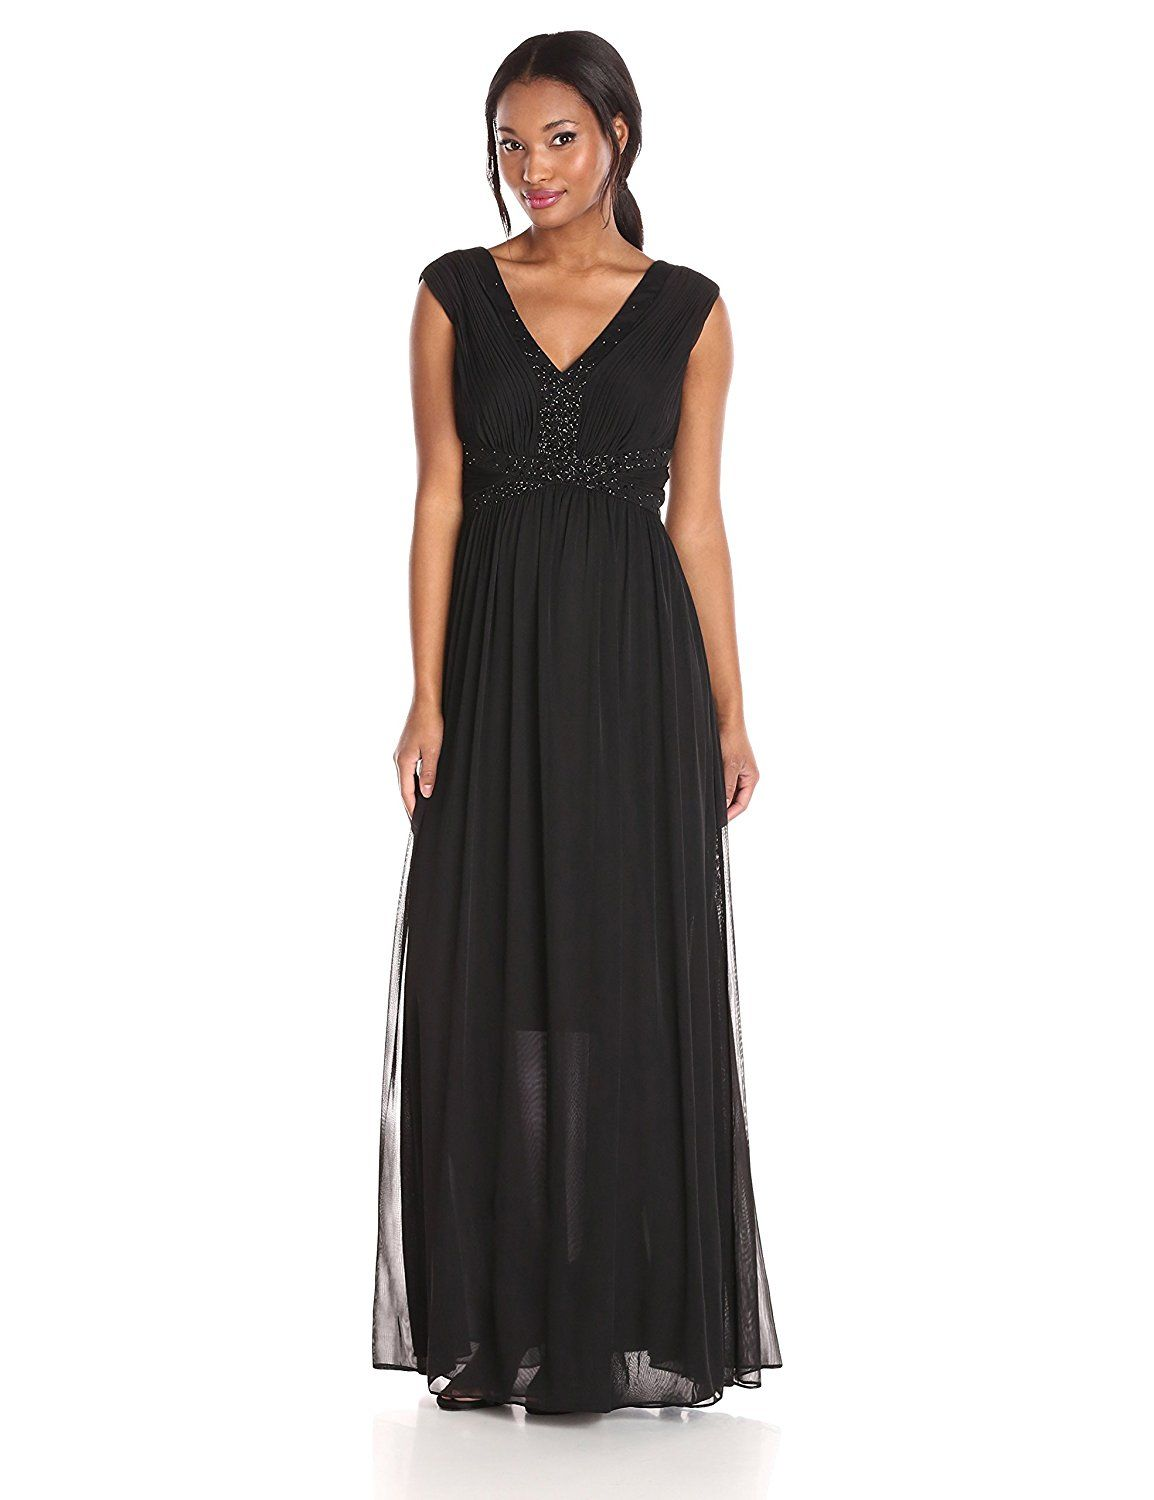 Js boutique womenus matte jersey chiffon gown with beaded